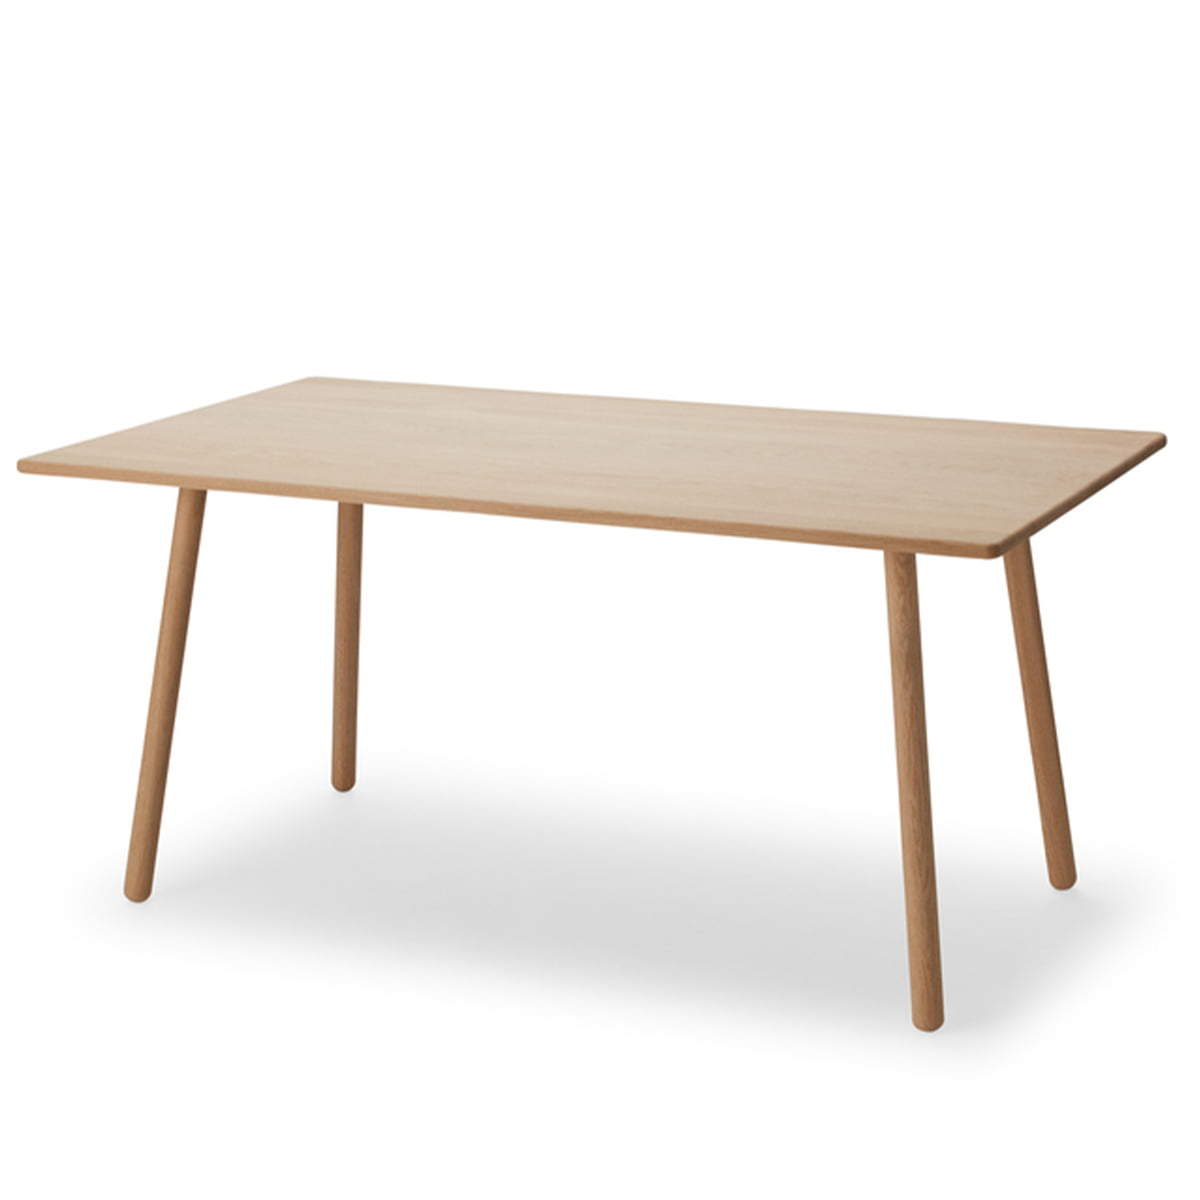 Designer Dinner Table charming decoration designer dining tables projects idea 1000 ideas about dining table design on pinterest Skagerak Georg Dining Table